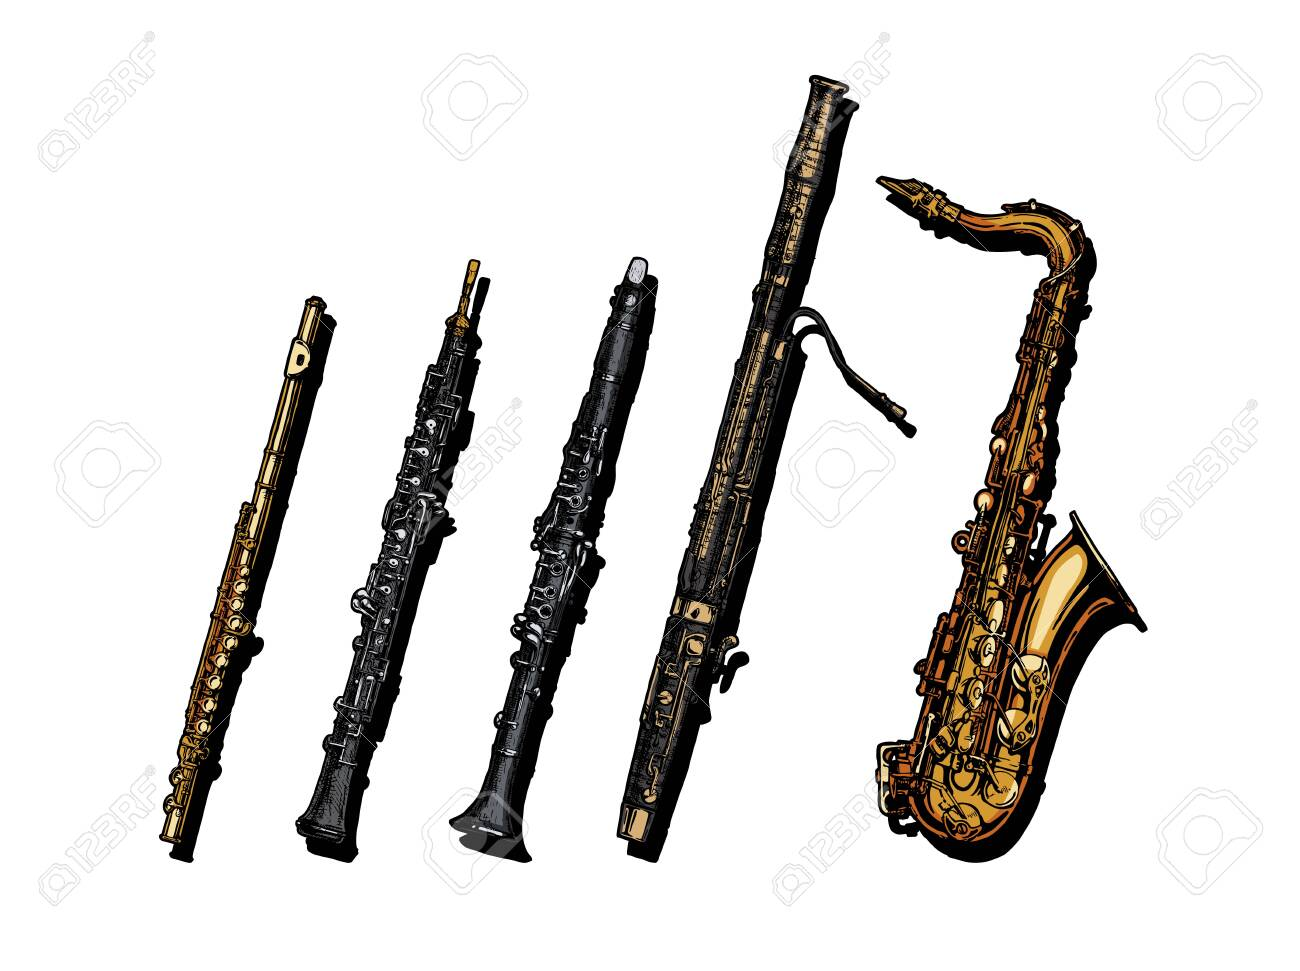 Vector hand drawn set of woodwind musical instruments. Flute, oboe, clarinet, bassoon and saxophone. - 133875538